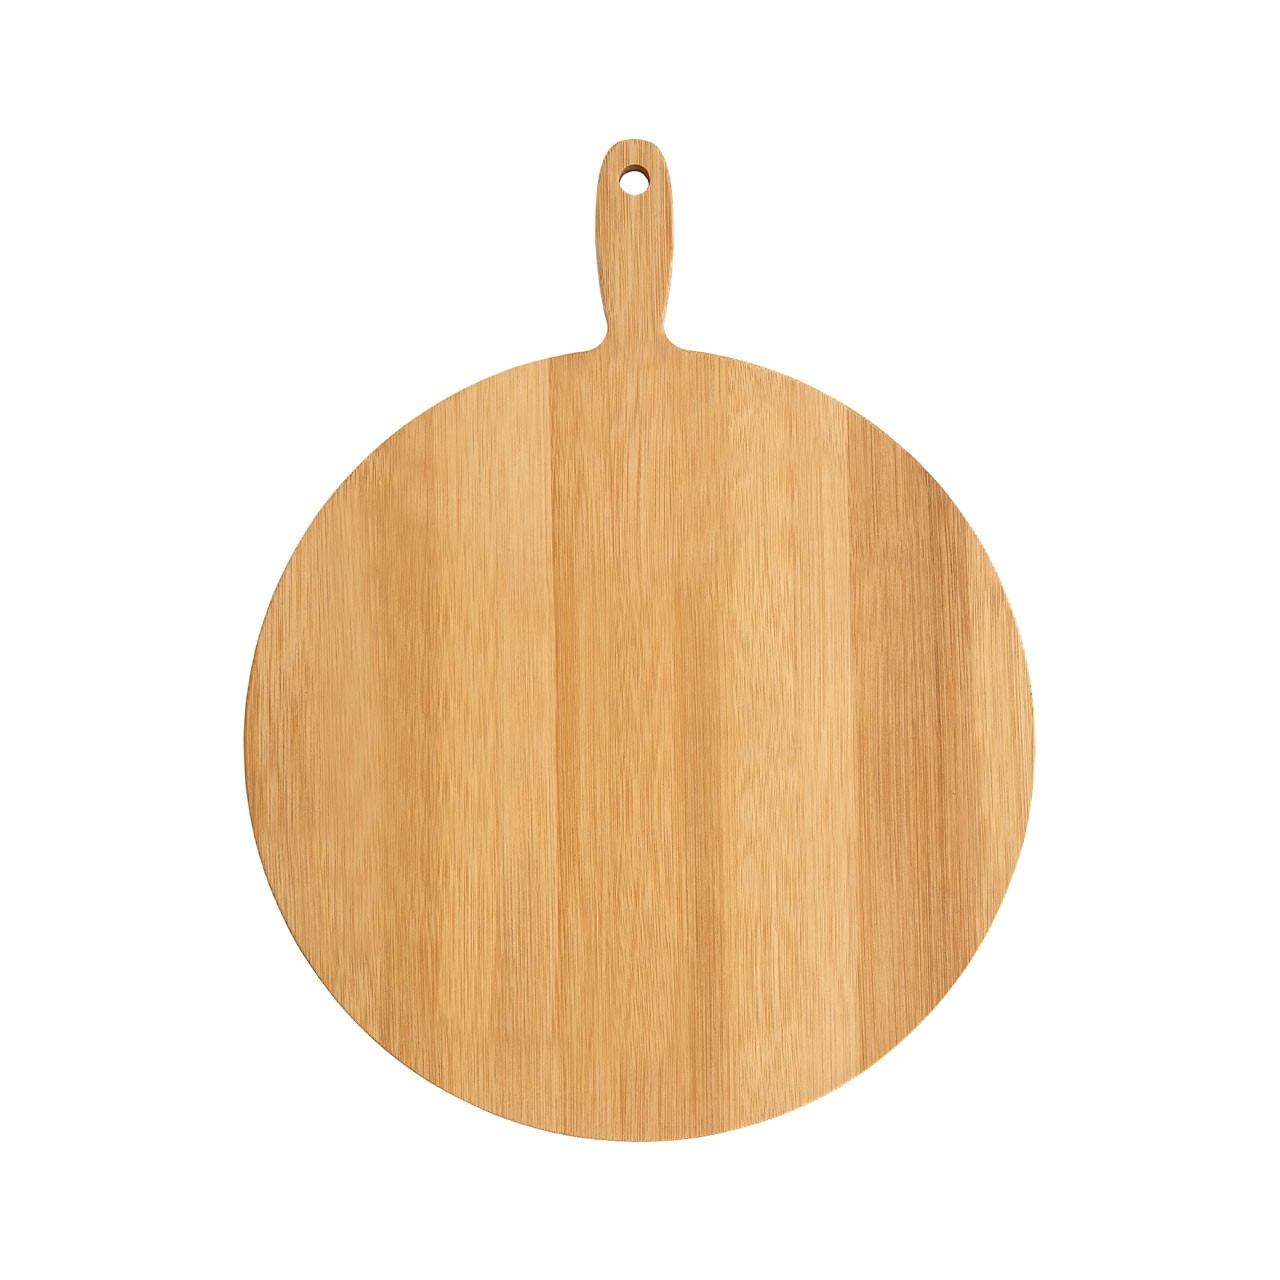 Paddle Chopping Board Kitchen Hanging Storage